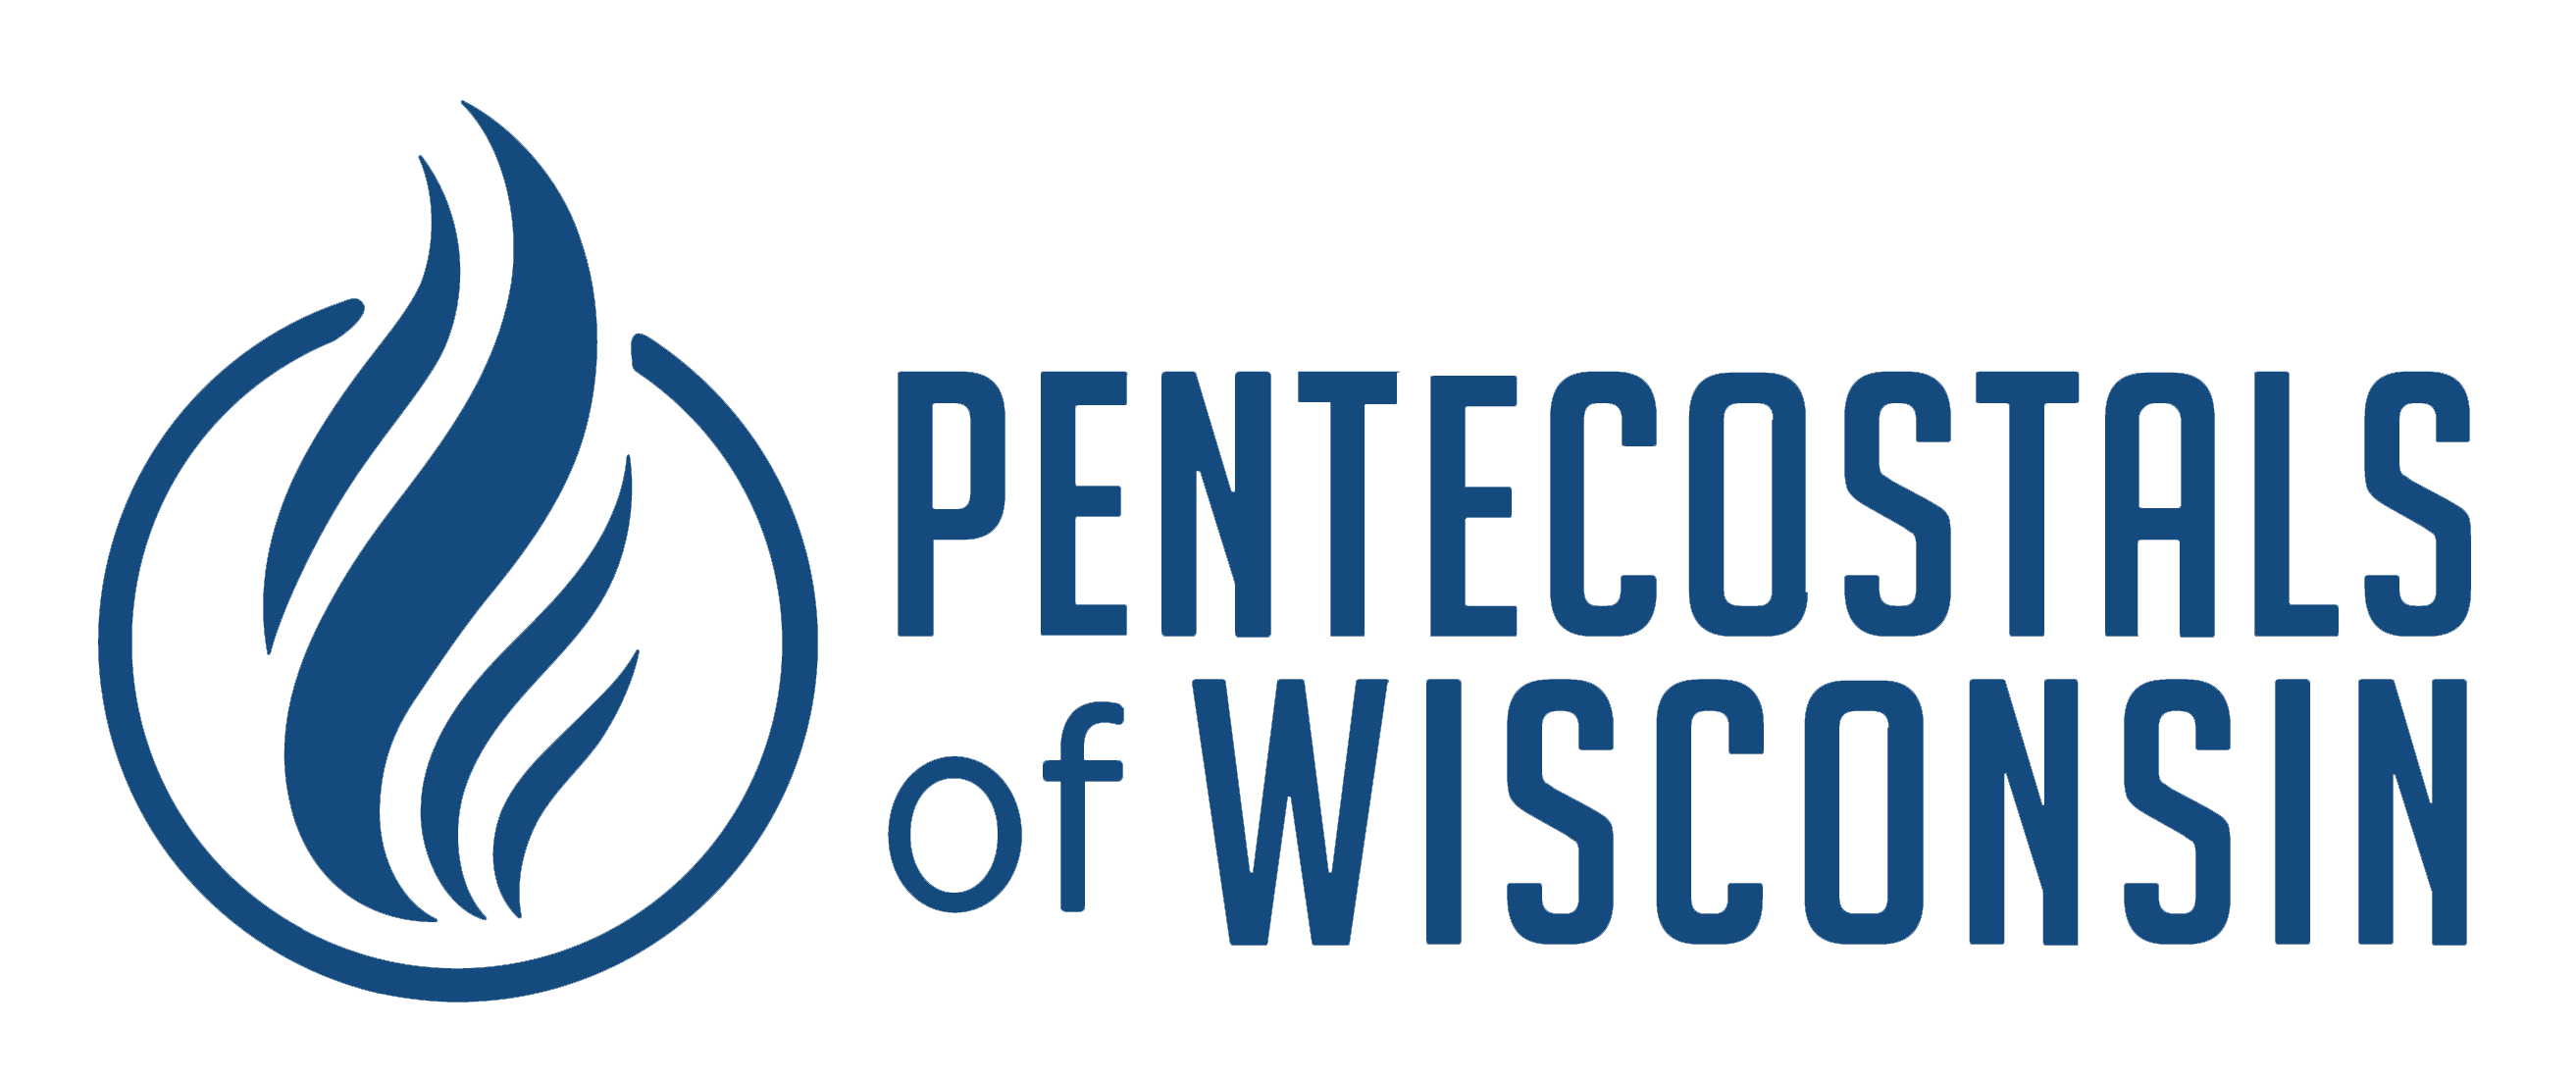 Pentecostals of Wisconsin Logo